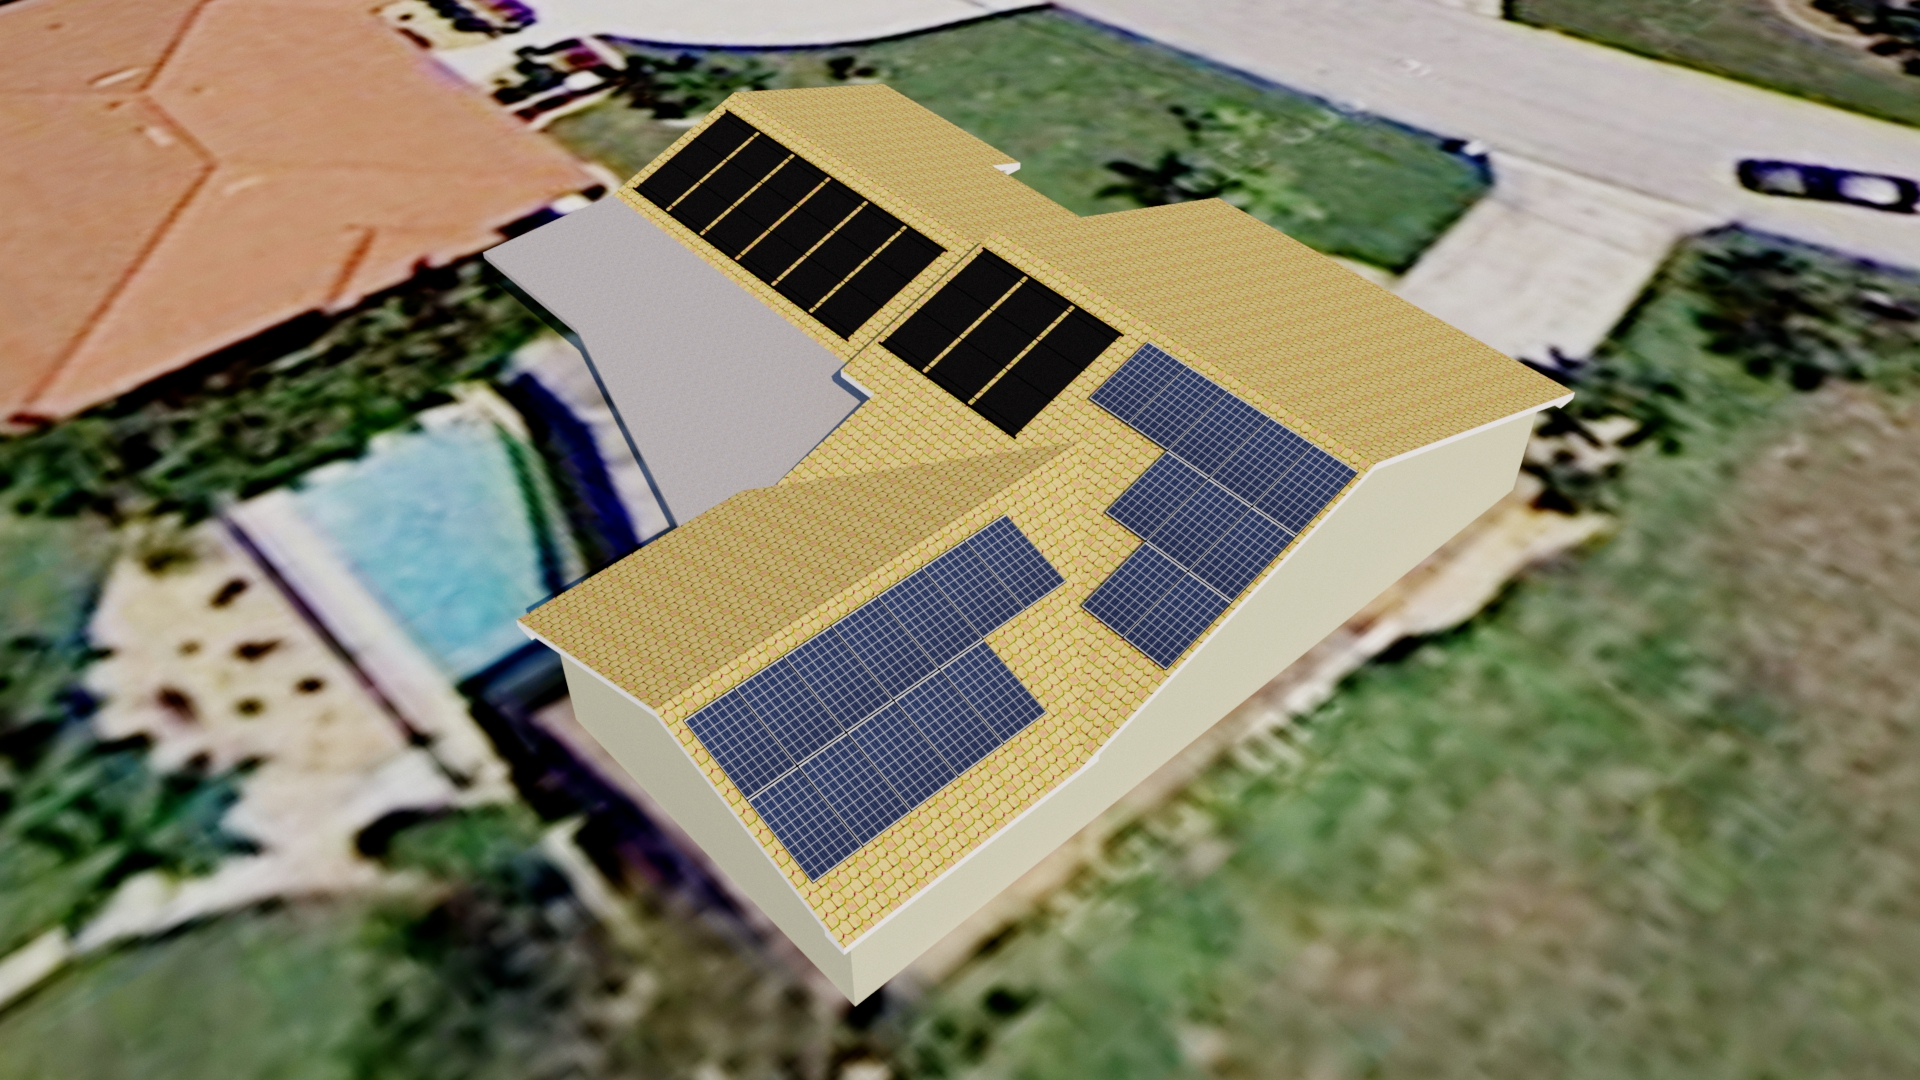 SanCap Solar Connect Photovoltaic Solar Panel System Design (39)